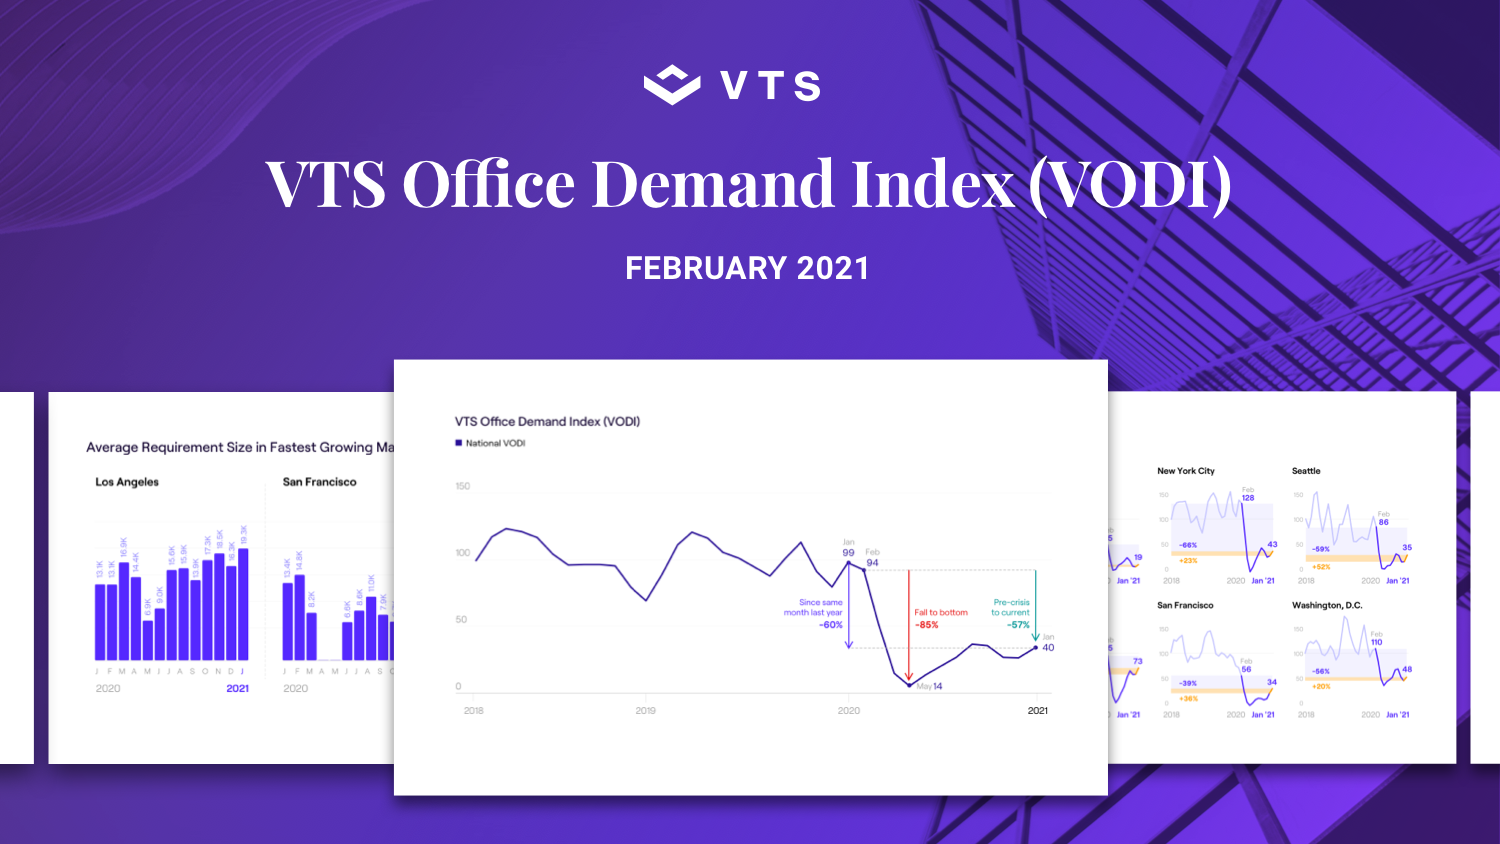 VTS Office Demand Index (VODI) February 2021 Report: Swings in Local COVID-19 Cases No Longer Impact Demand for Office Space